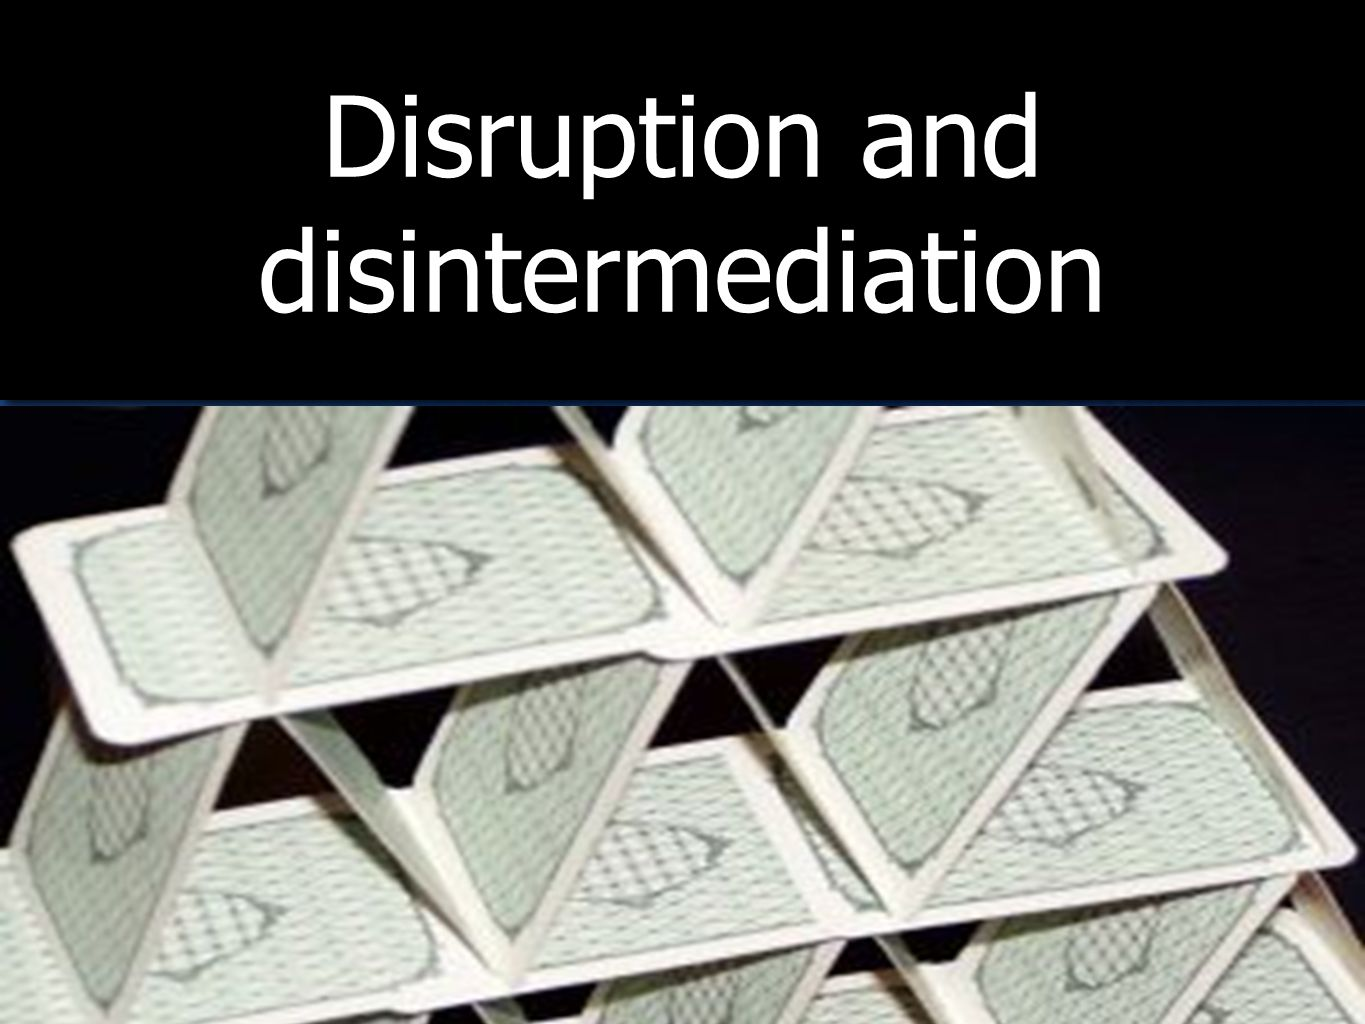 Disruption and disintermediation